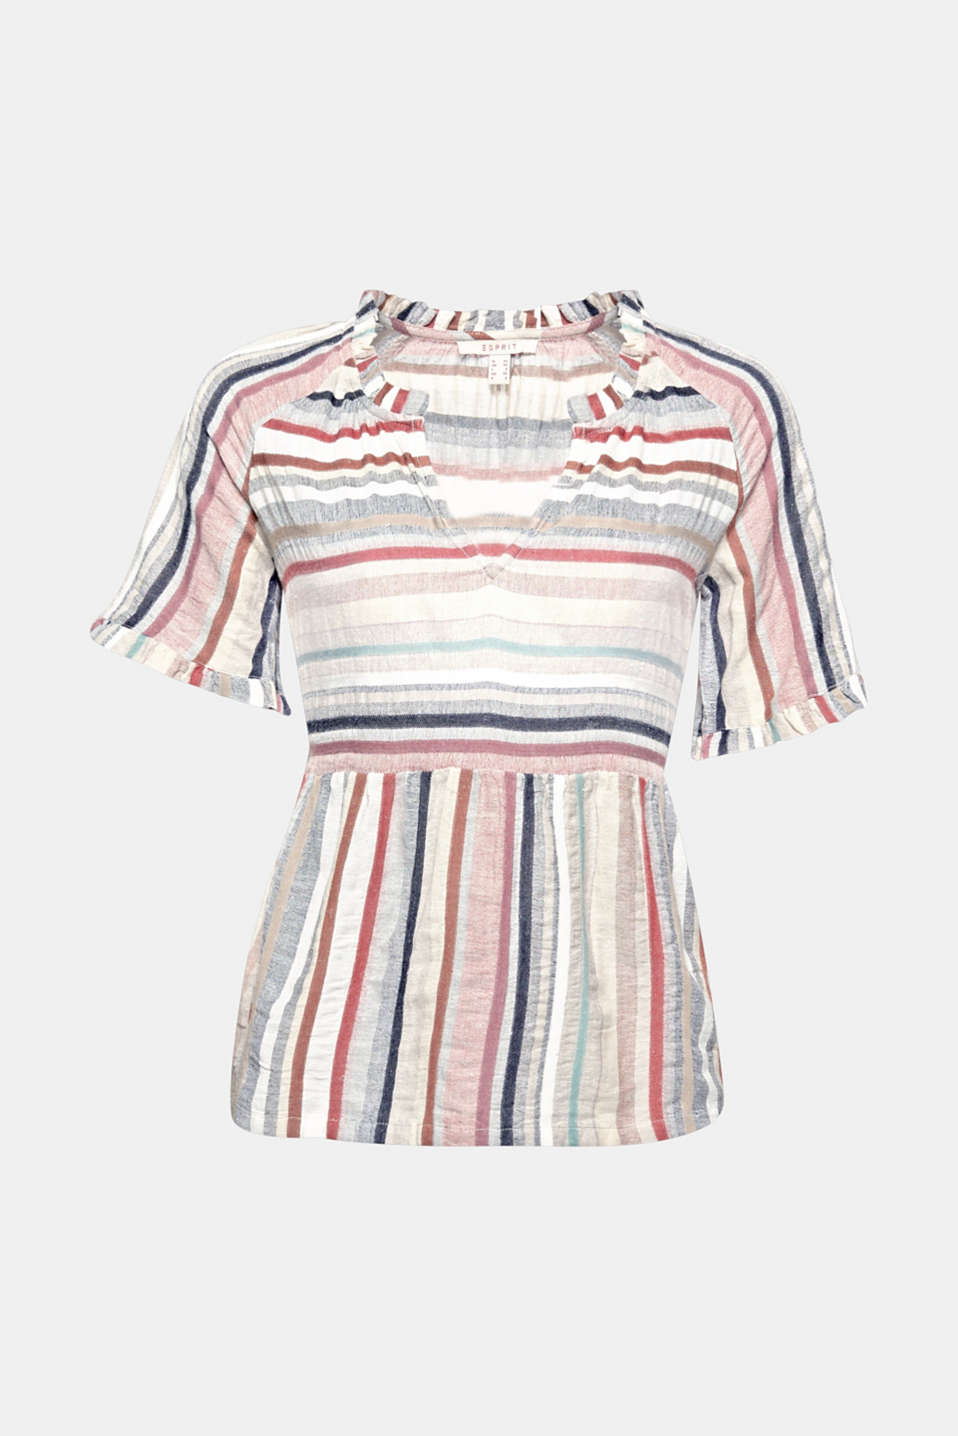 Wonderfully lightweight fabric, brightly coloured stripes and romantic, pretty frills – this feminine blouse has everything to set your heart aflutter this spring!